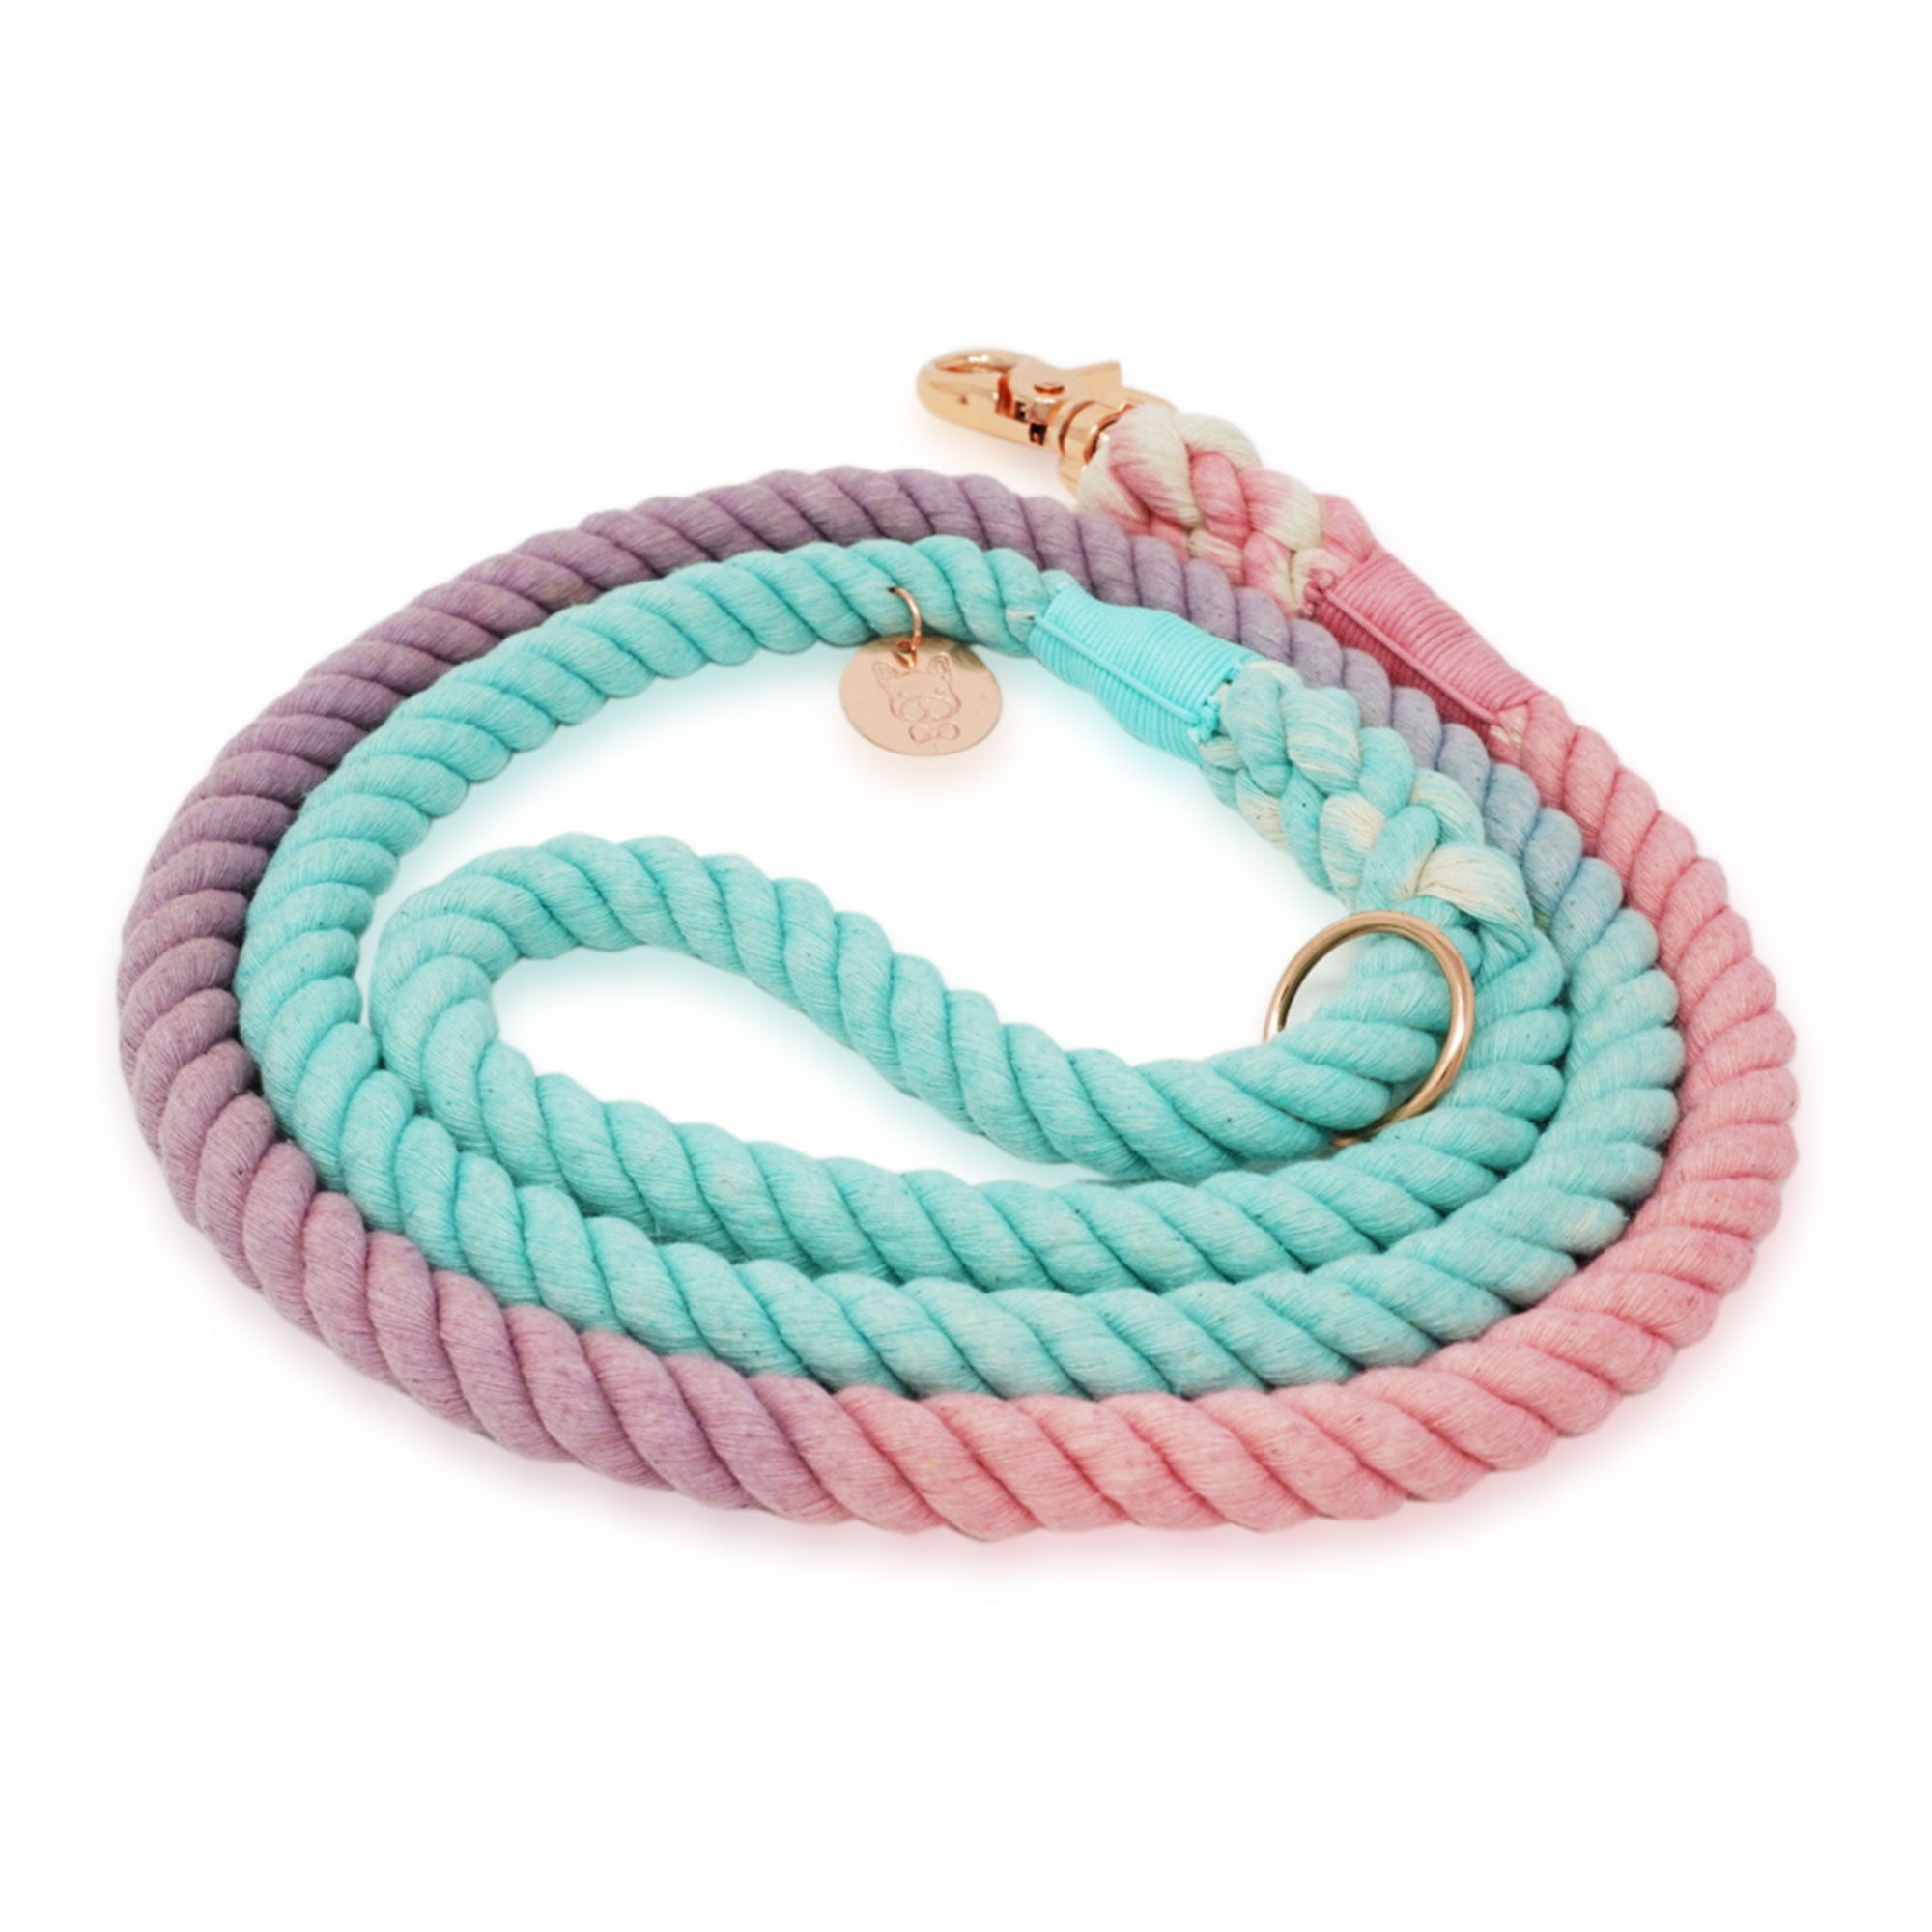 Cotton Rope Leash - Aquatic